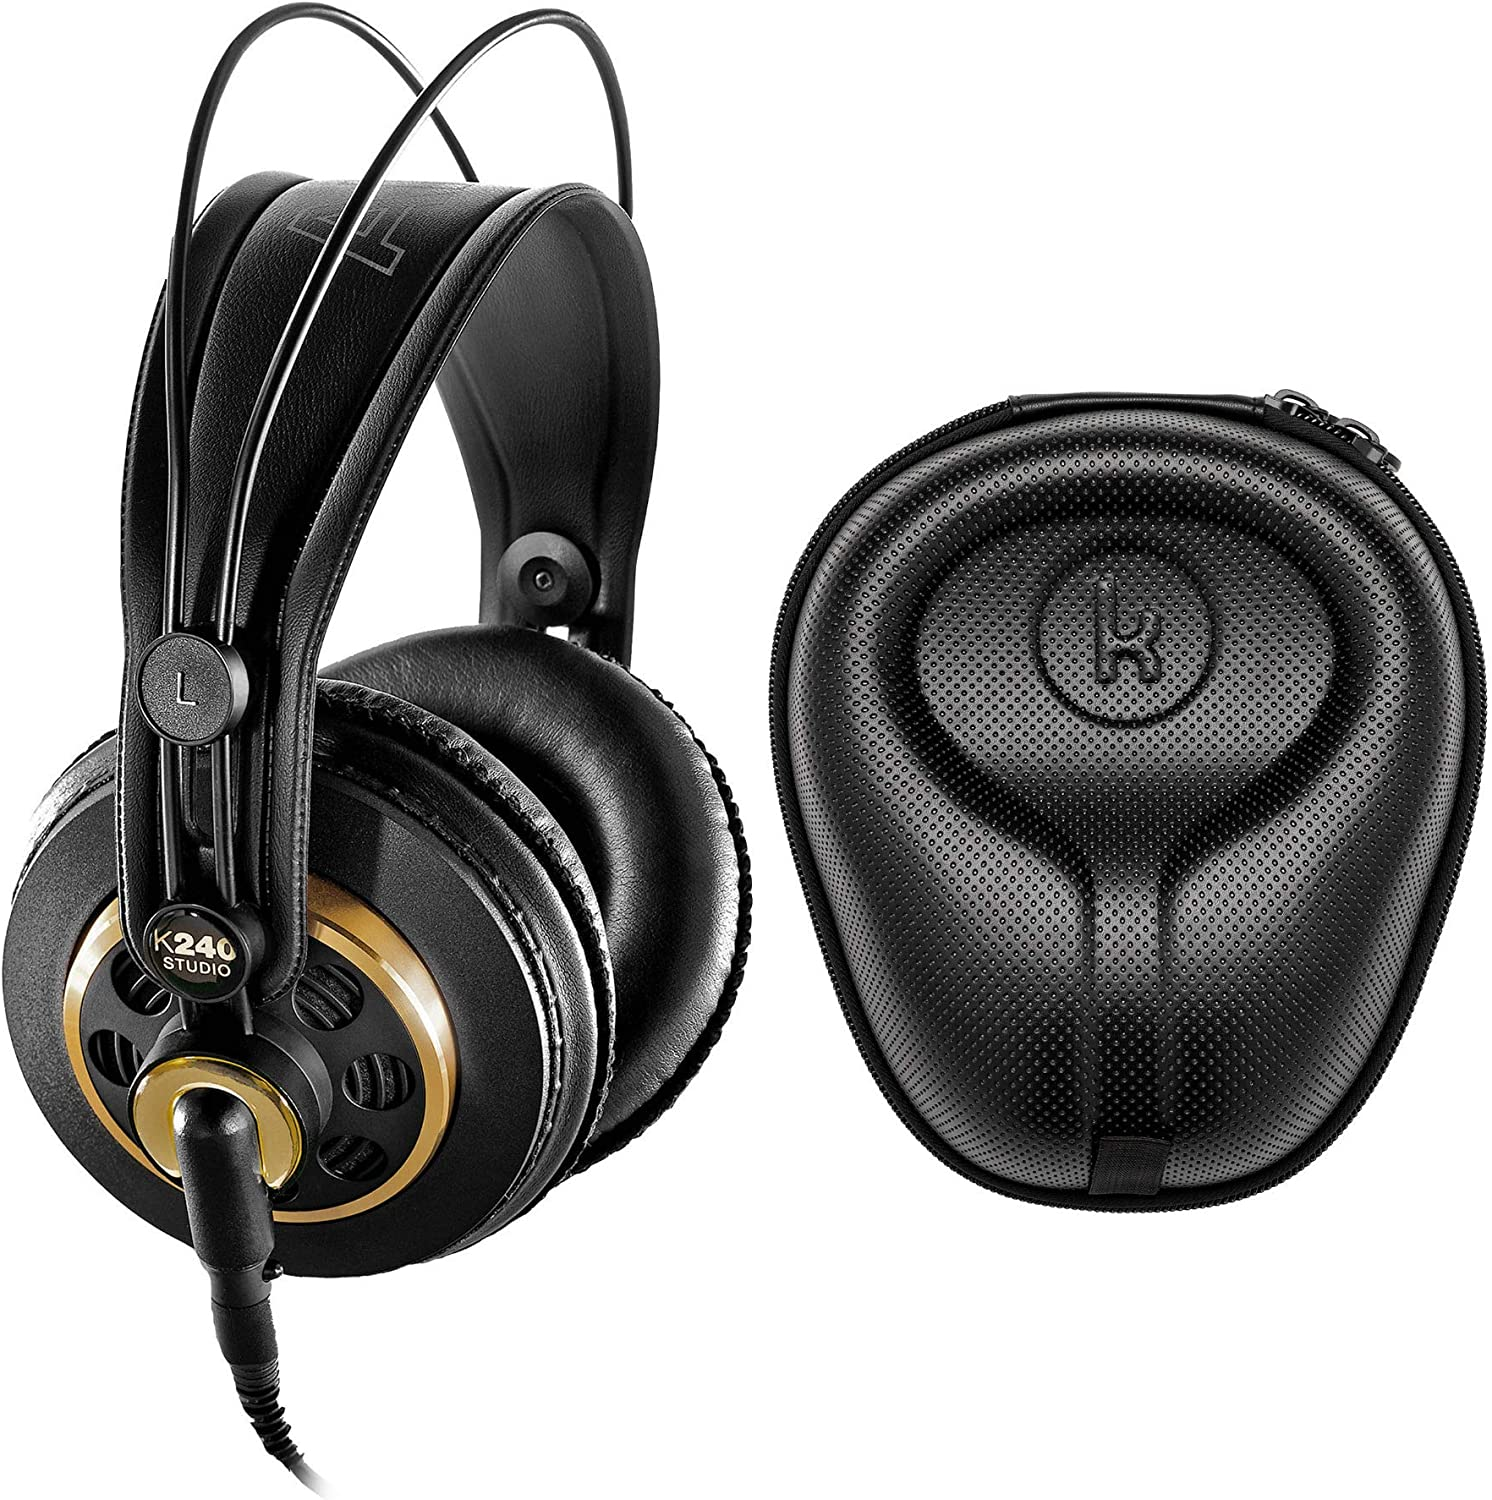 AKG K240 Studio Professional Headphone Semi-Open Stereo Over-Ear At the price of Clearance SALE! Limited time! surprise